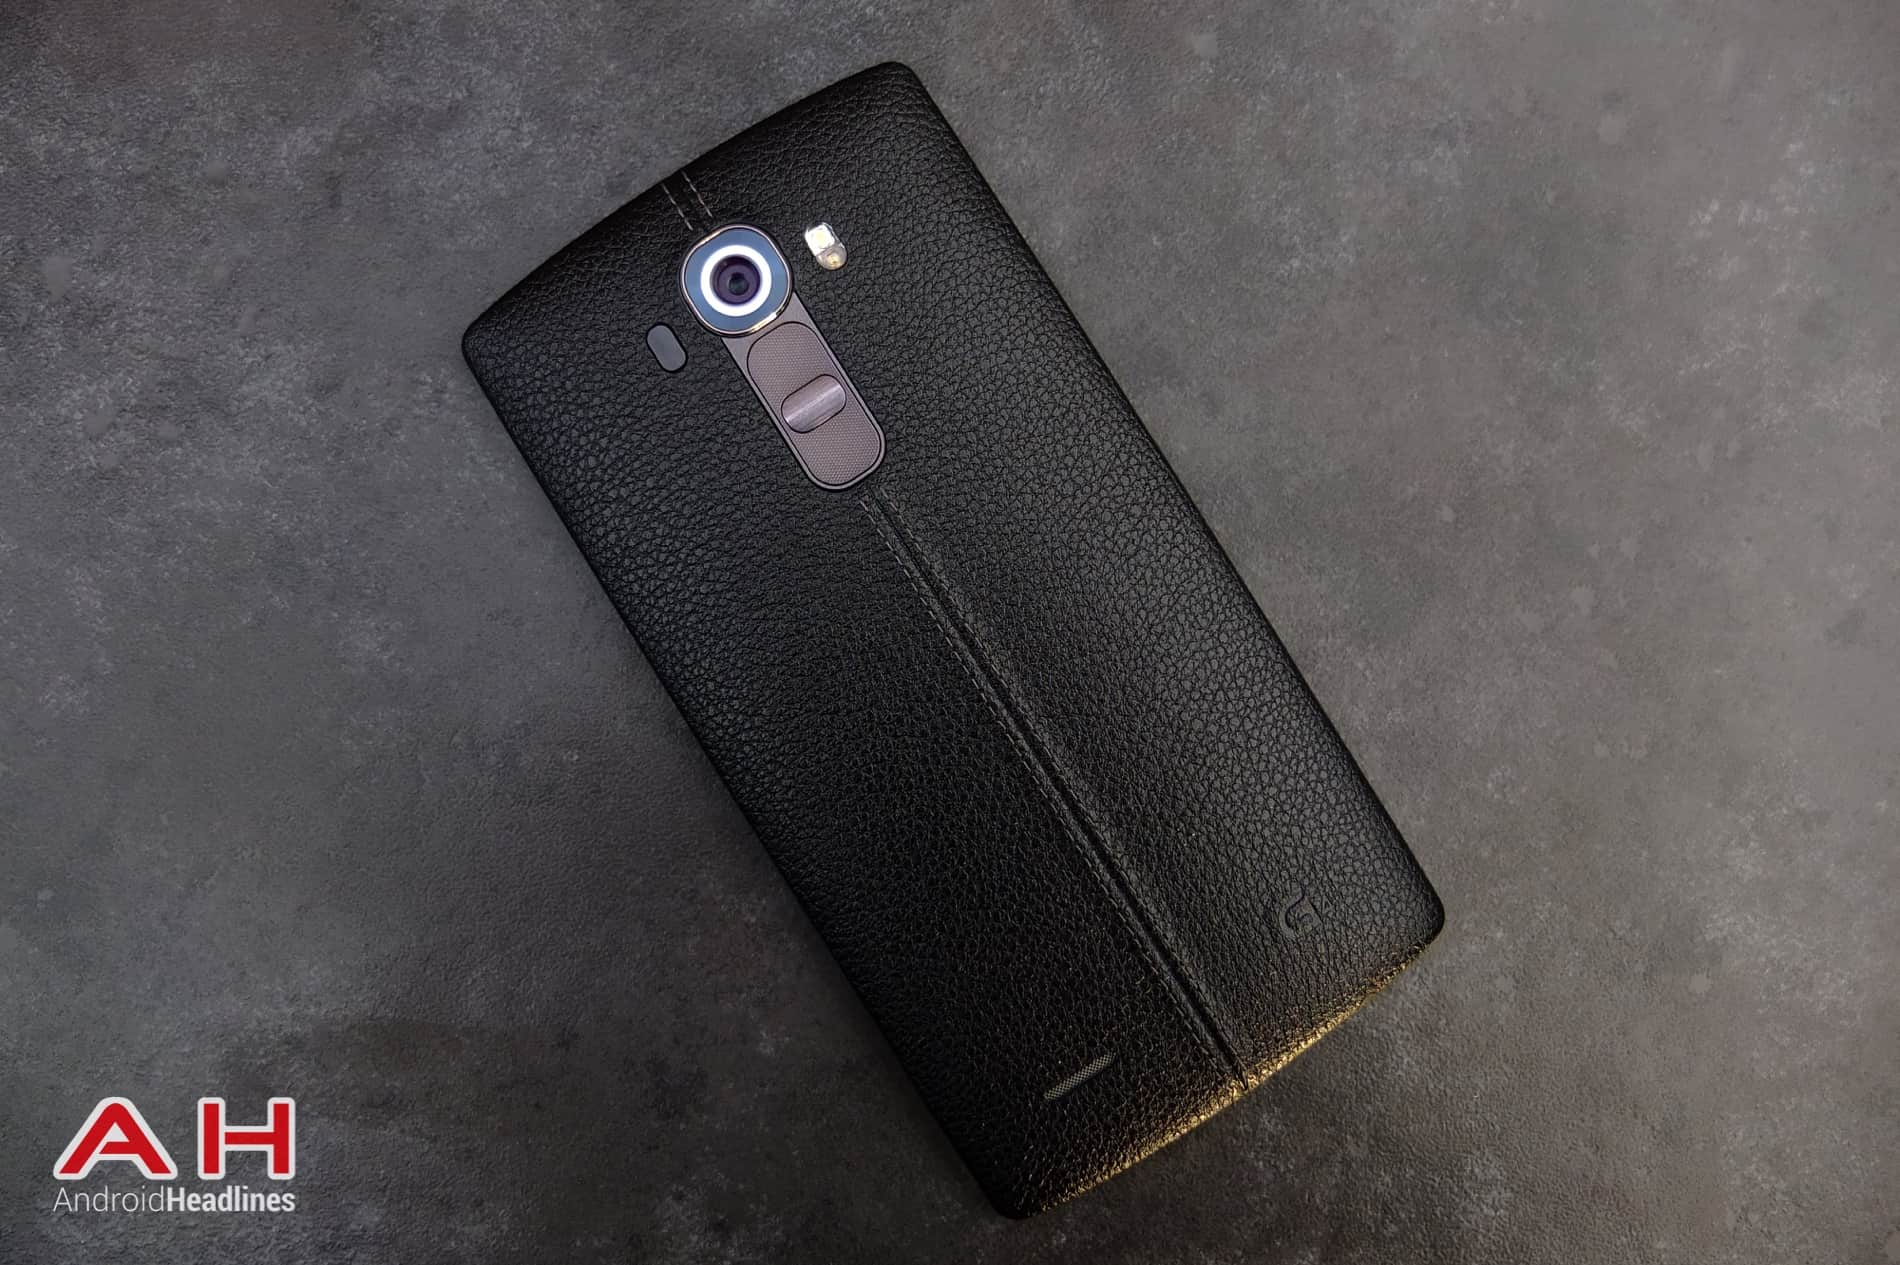 LG G4 BlackLeather TD AH 05